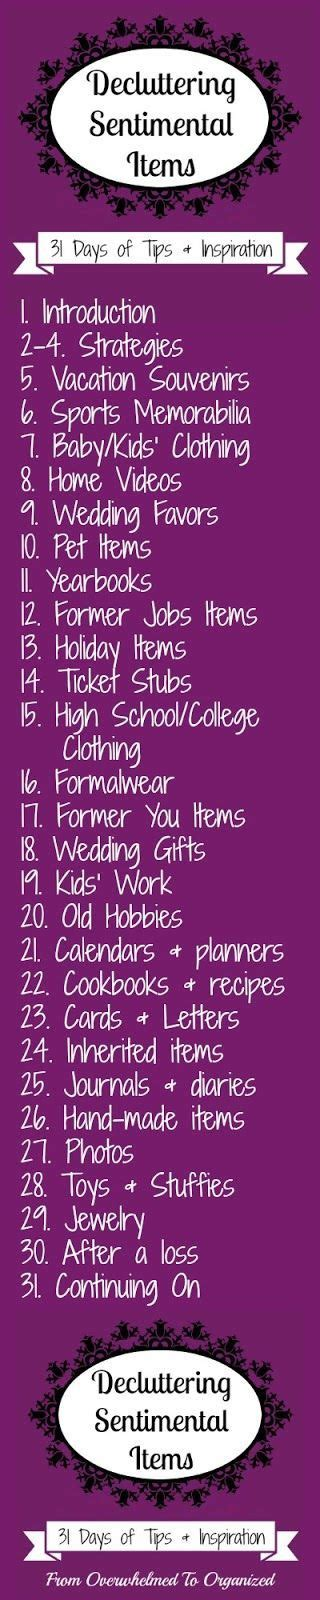 decluttering sentimental items 167 best images about declutter and organize on pinterest